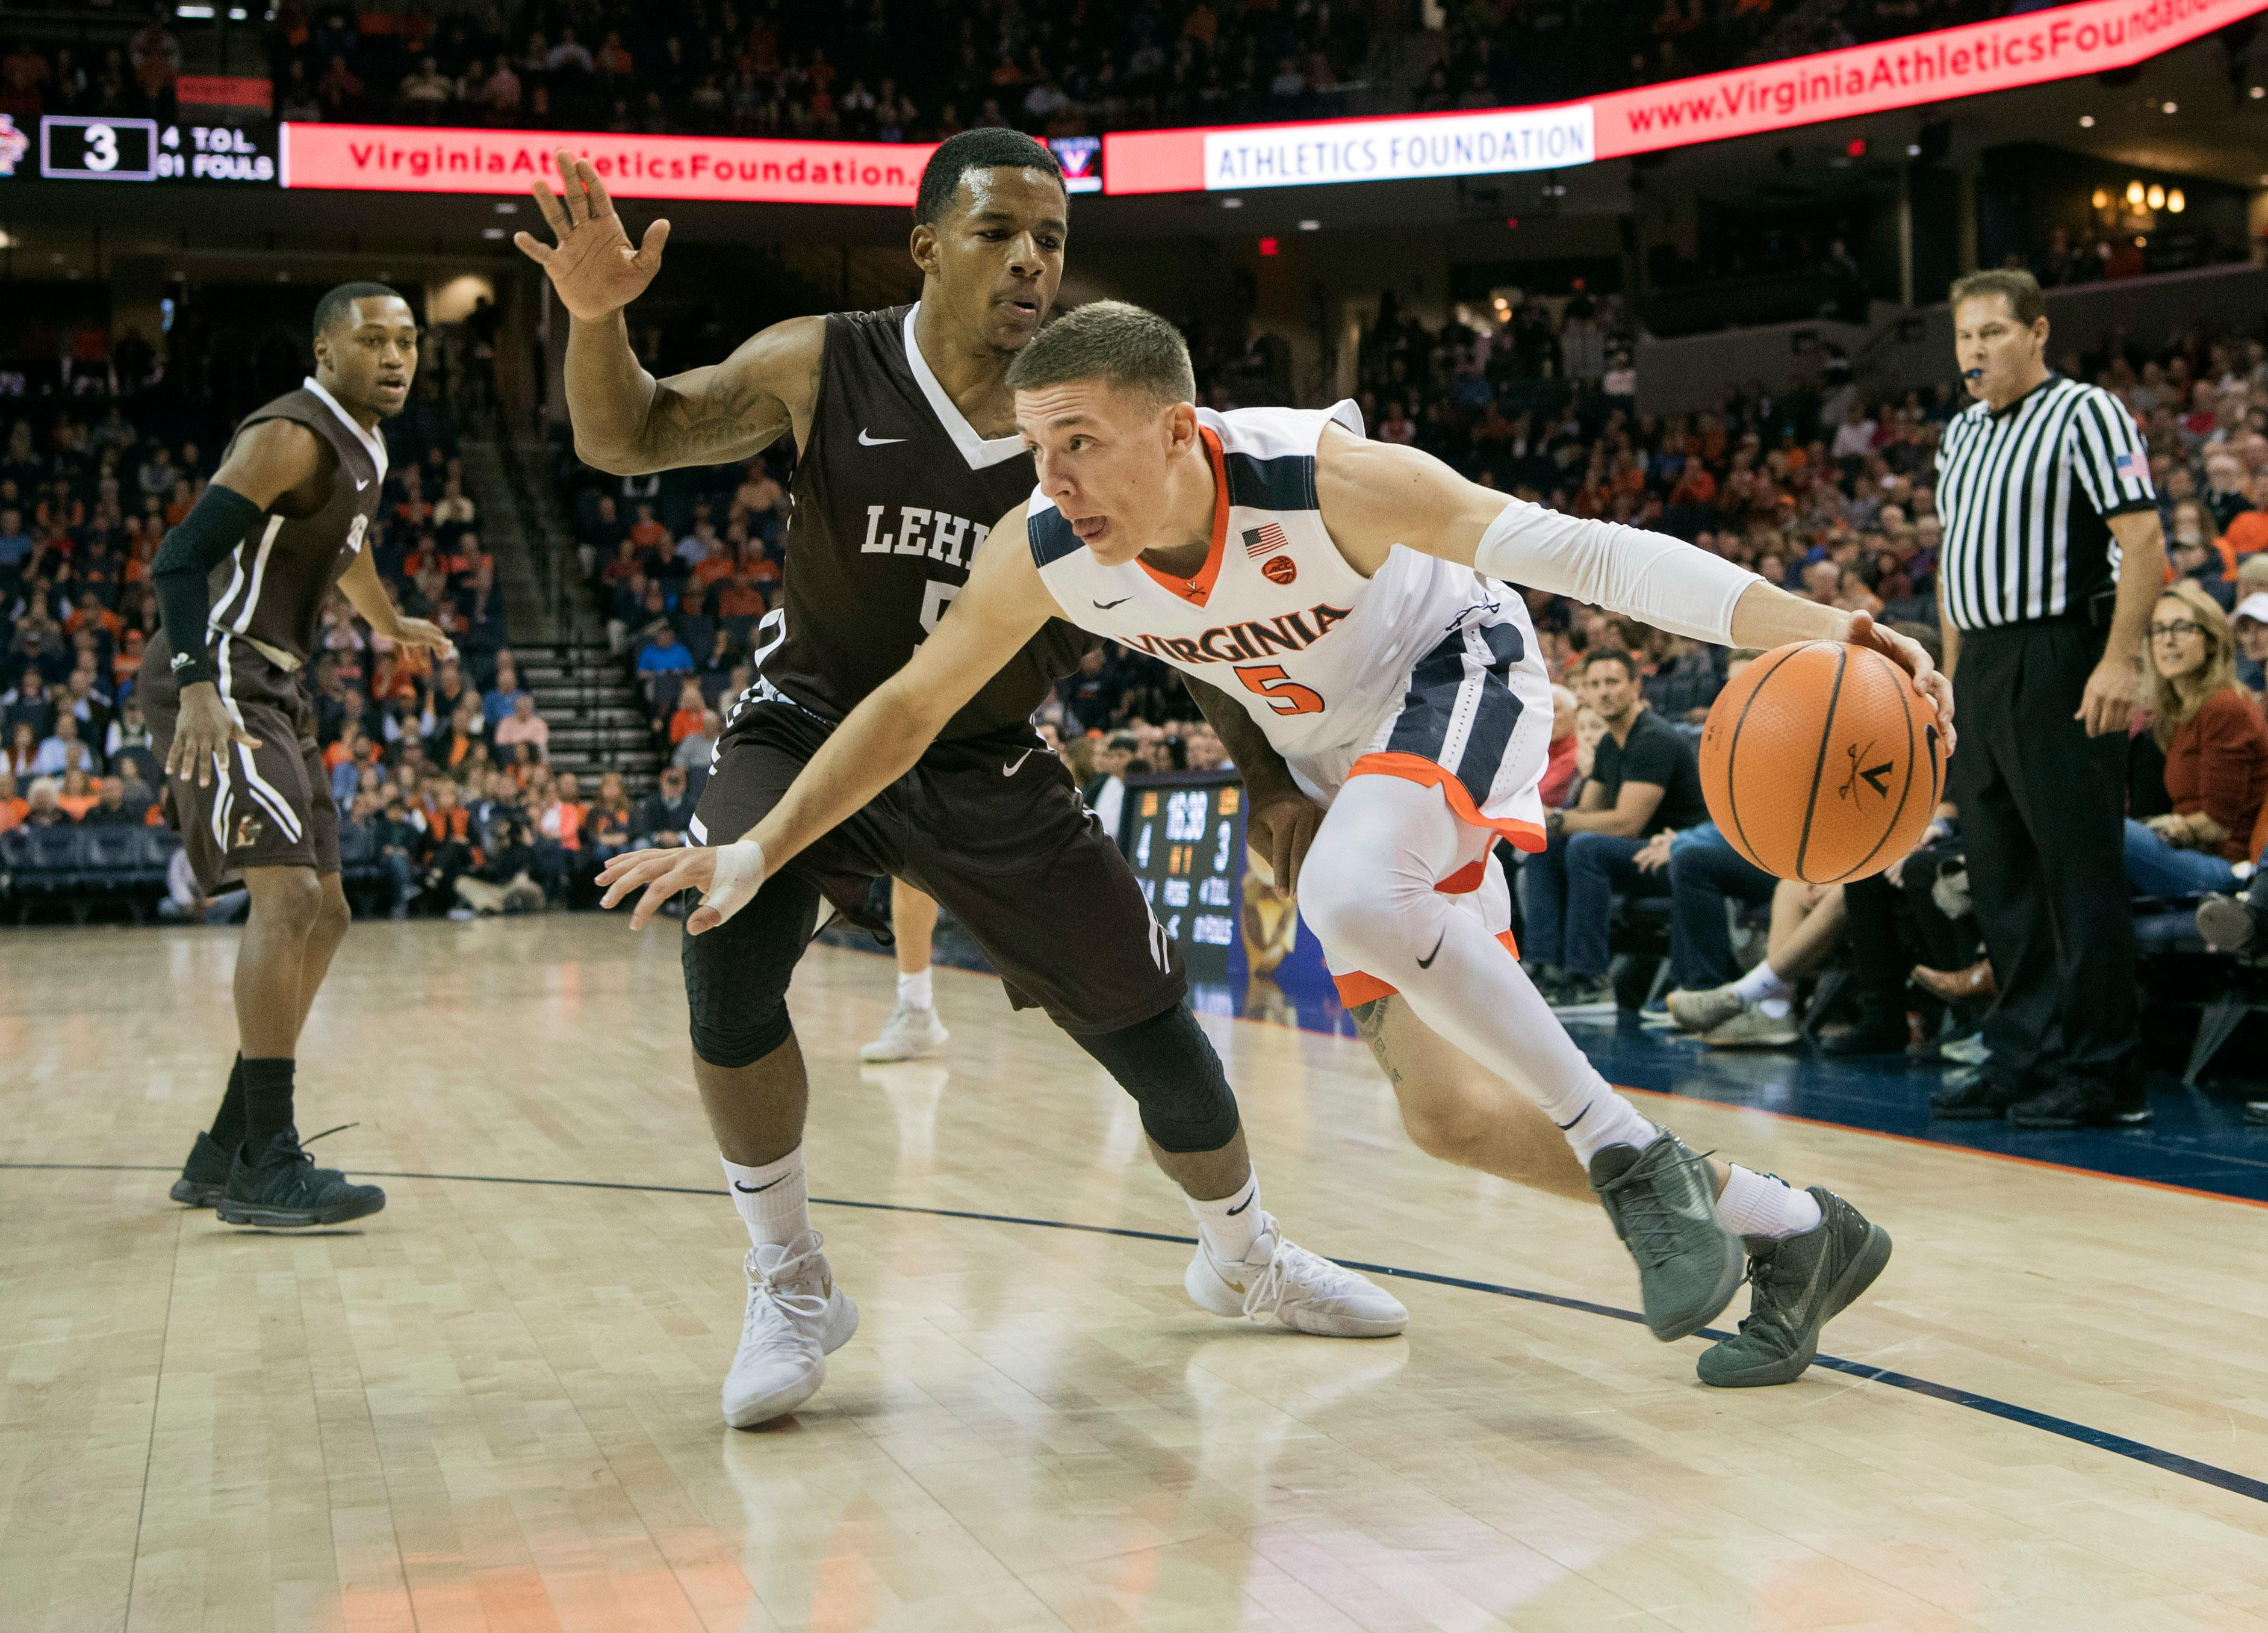 File- This Dec. 2, 2017, file photo shows Virginia's Kyle Guy (5) driving around Lehigh's Lance Tejada (5) during the first half of an NCAA college basketball game in Charlottesville, Va. The sophomore guard is leading the ninth-ranked Cavaliers in scoring entering Saturday's ACC opener against Boston College. (AP Photo/Lee Luther Jr., File)